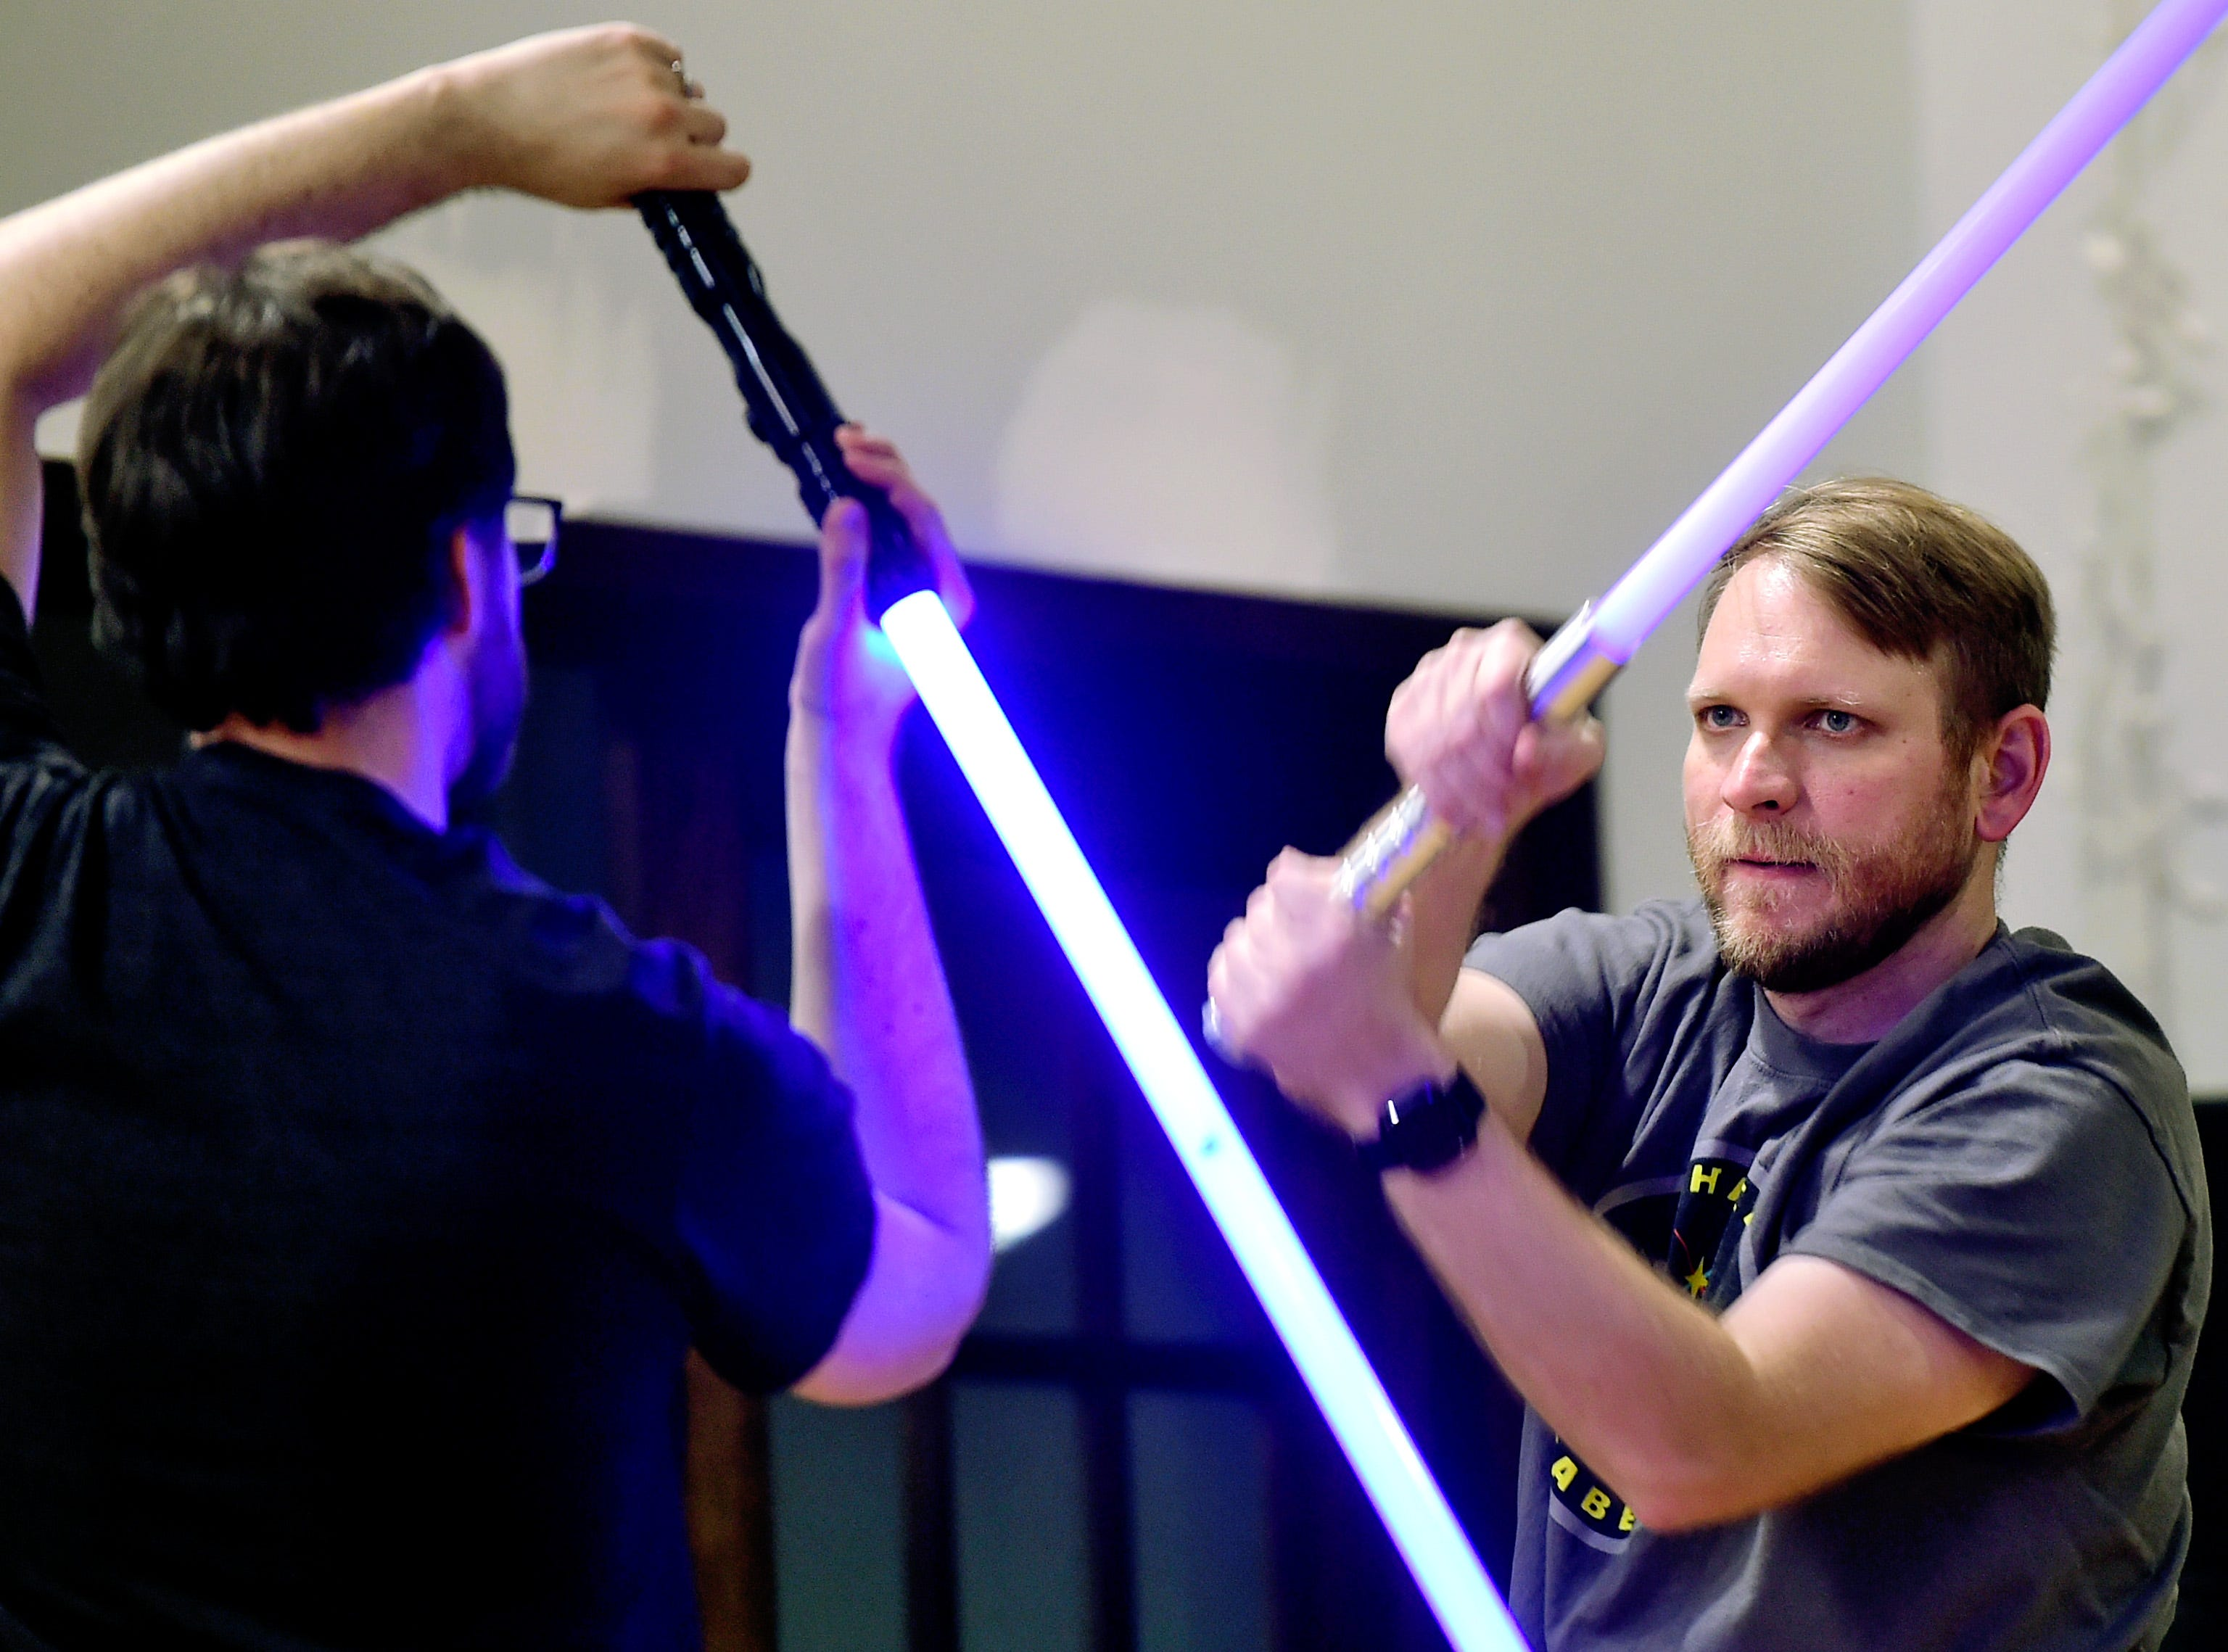 Andrew Hocking, left, of Ithaca, and Terry Gray, right, of Lansing, during the Ithaca Sabers weekly lightsaber combat session at Centerline Fitness & Martial Arts in Ithaca.  February 4, 2019.